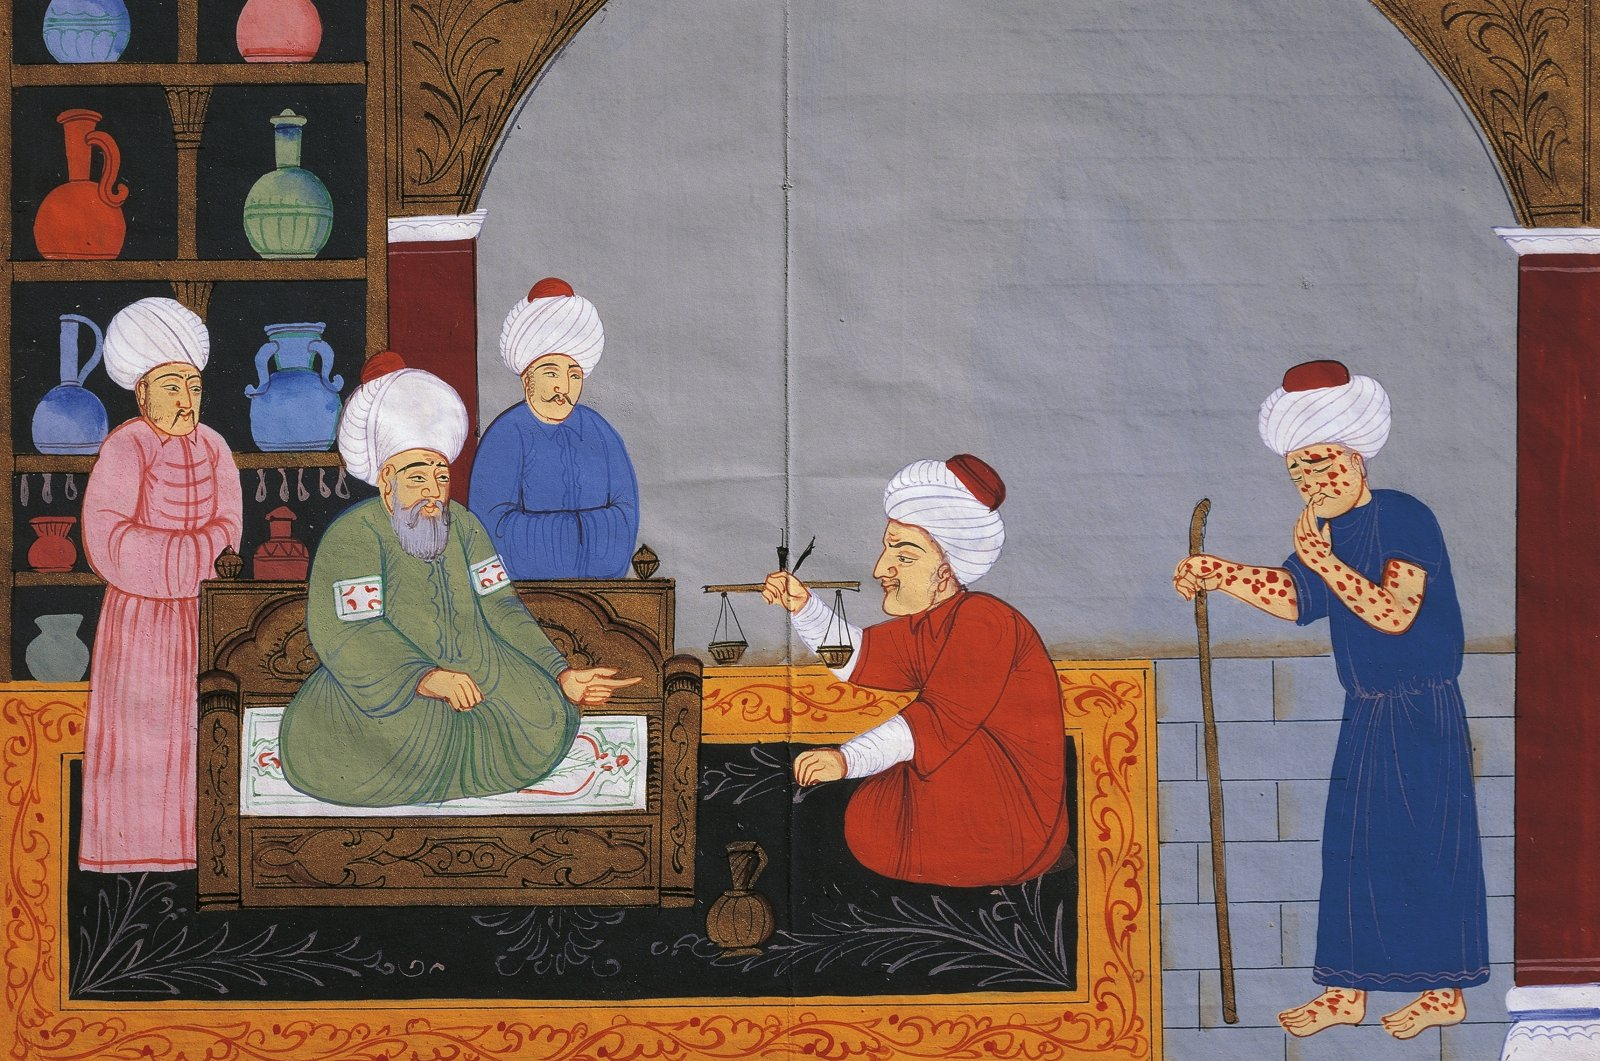 """Preparation of medicines for the treatment of a patient suffering from smallpox, miniature from """"The Canon of medicine,"""" by Avicenna (980-1037), Ottoman manuscript in 17th century Istanbul. (Istanbul University Library/Photo by DeAgostini/Getty Images)"""